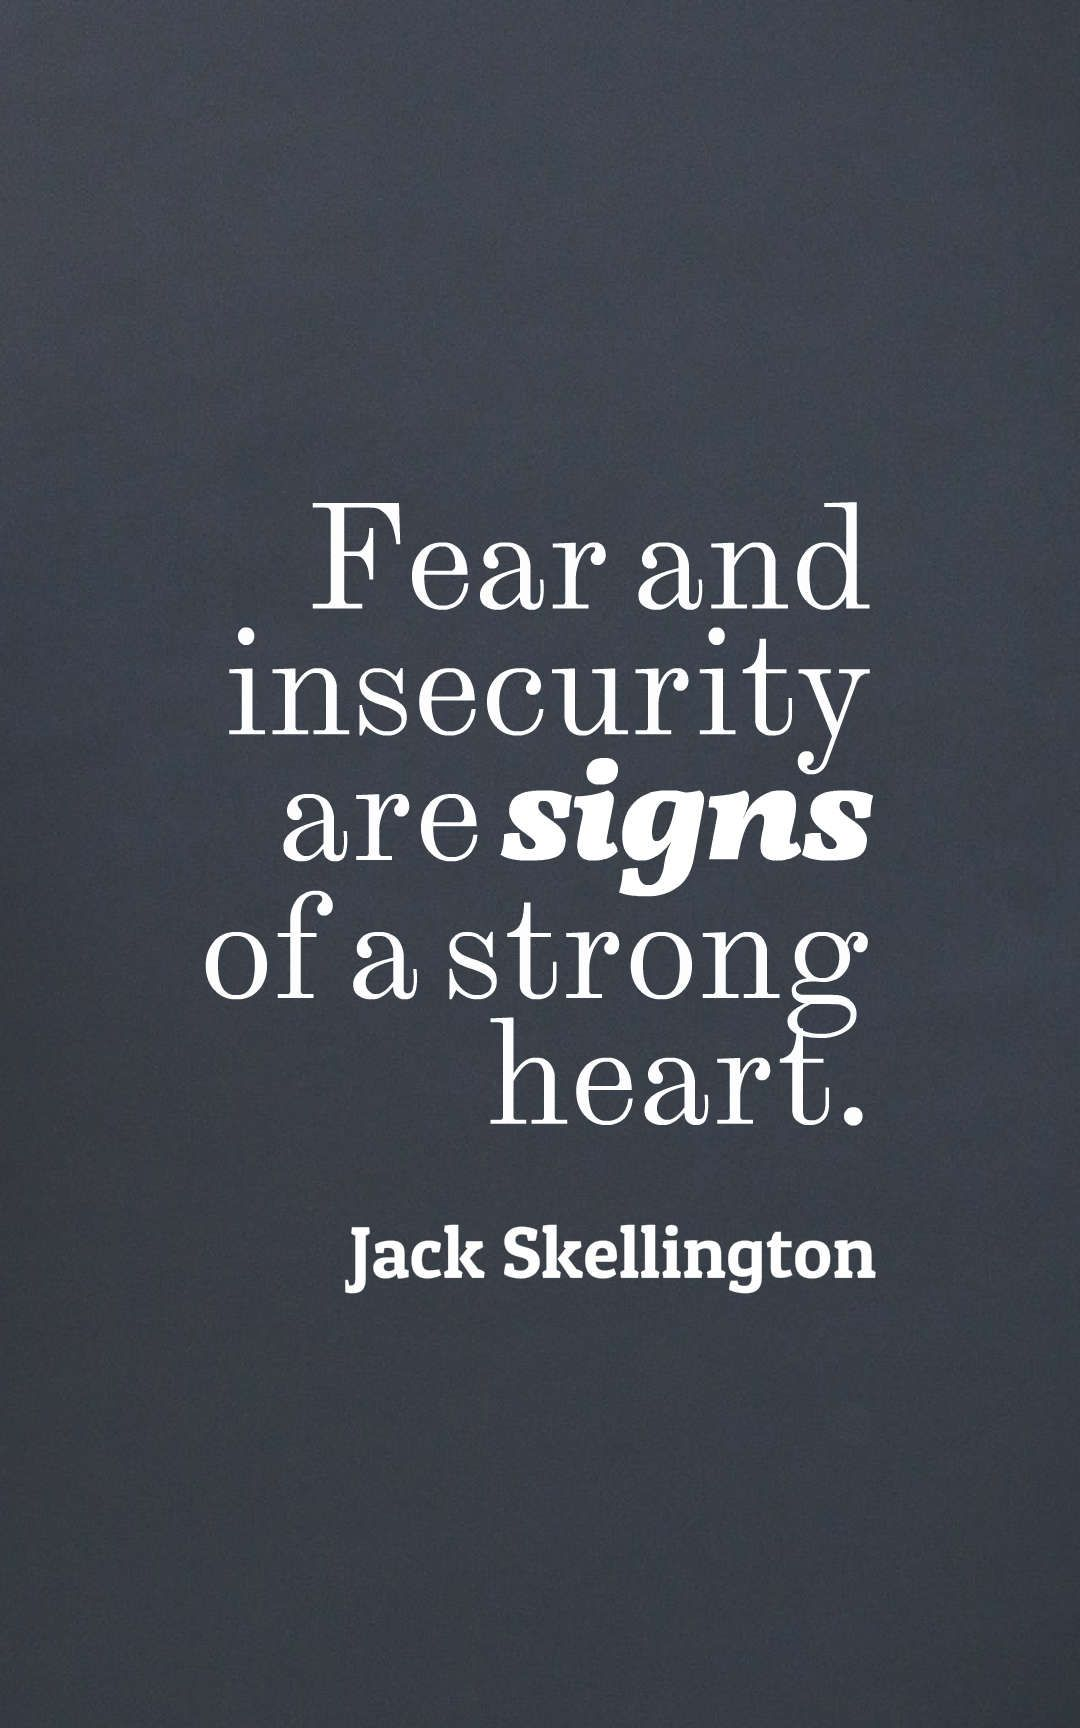 Insecurity signs